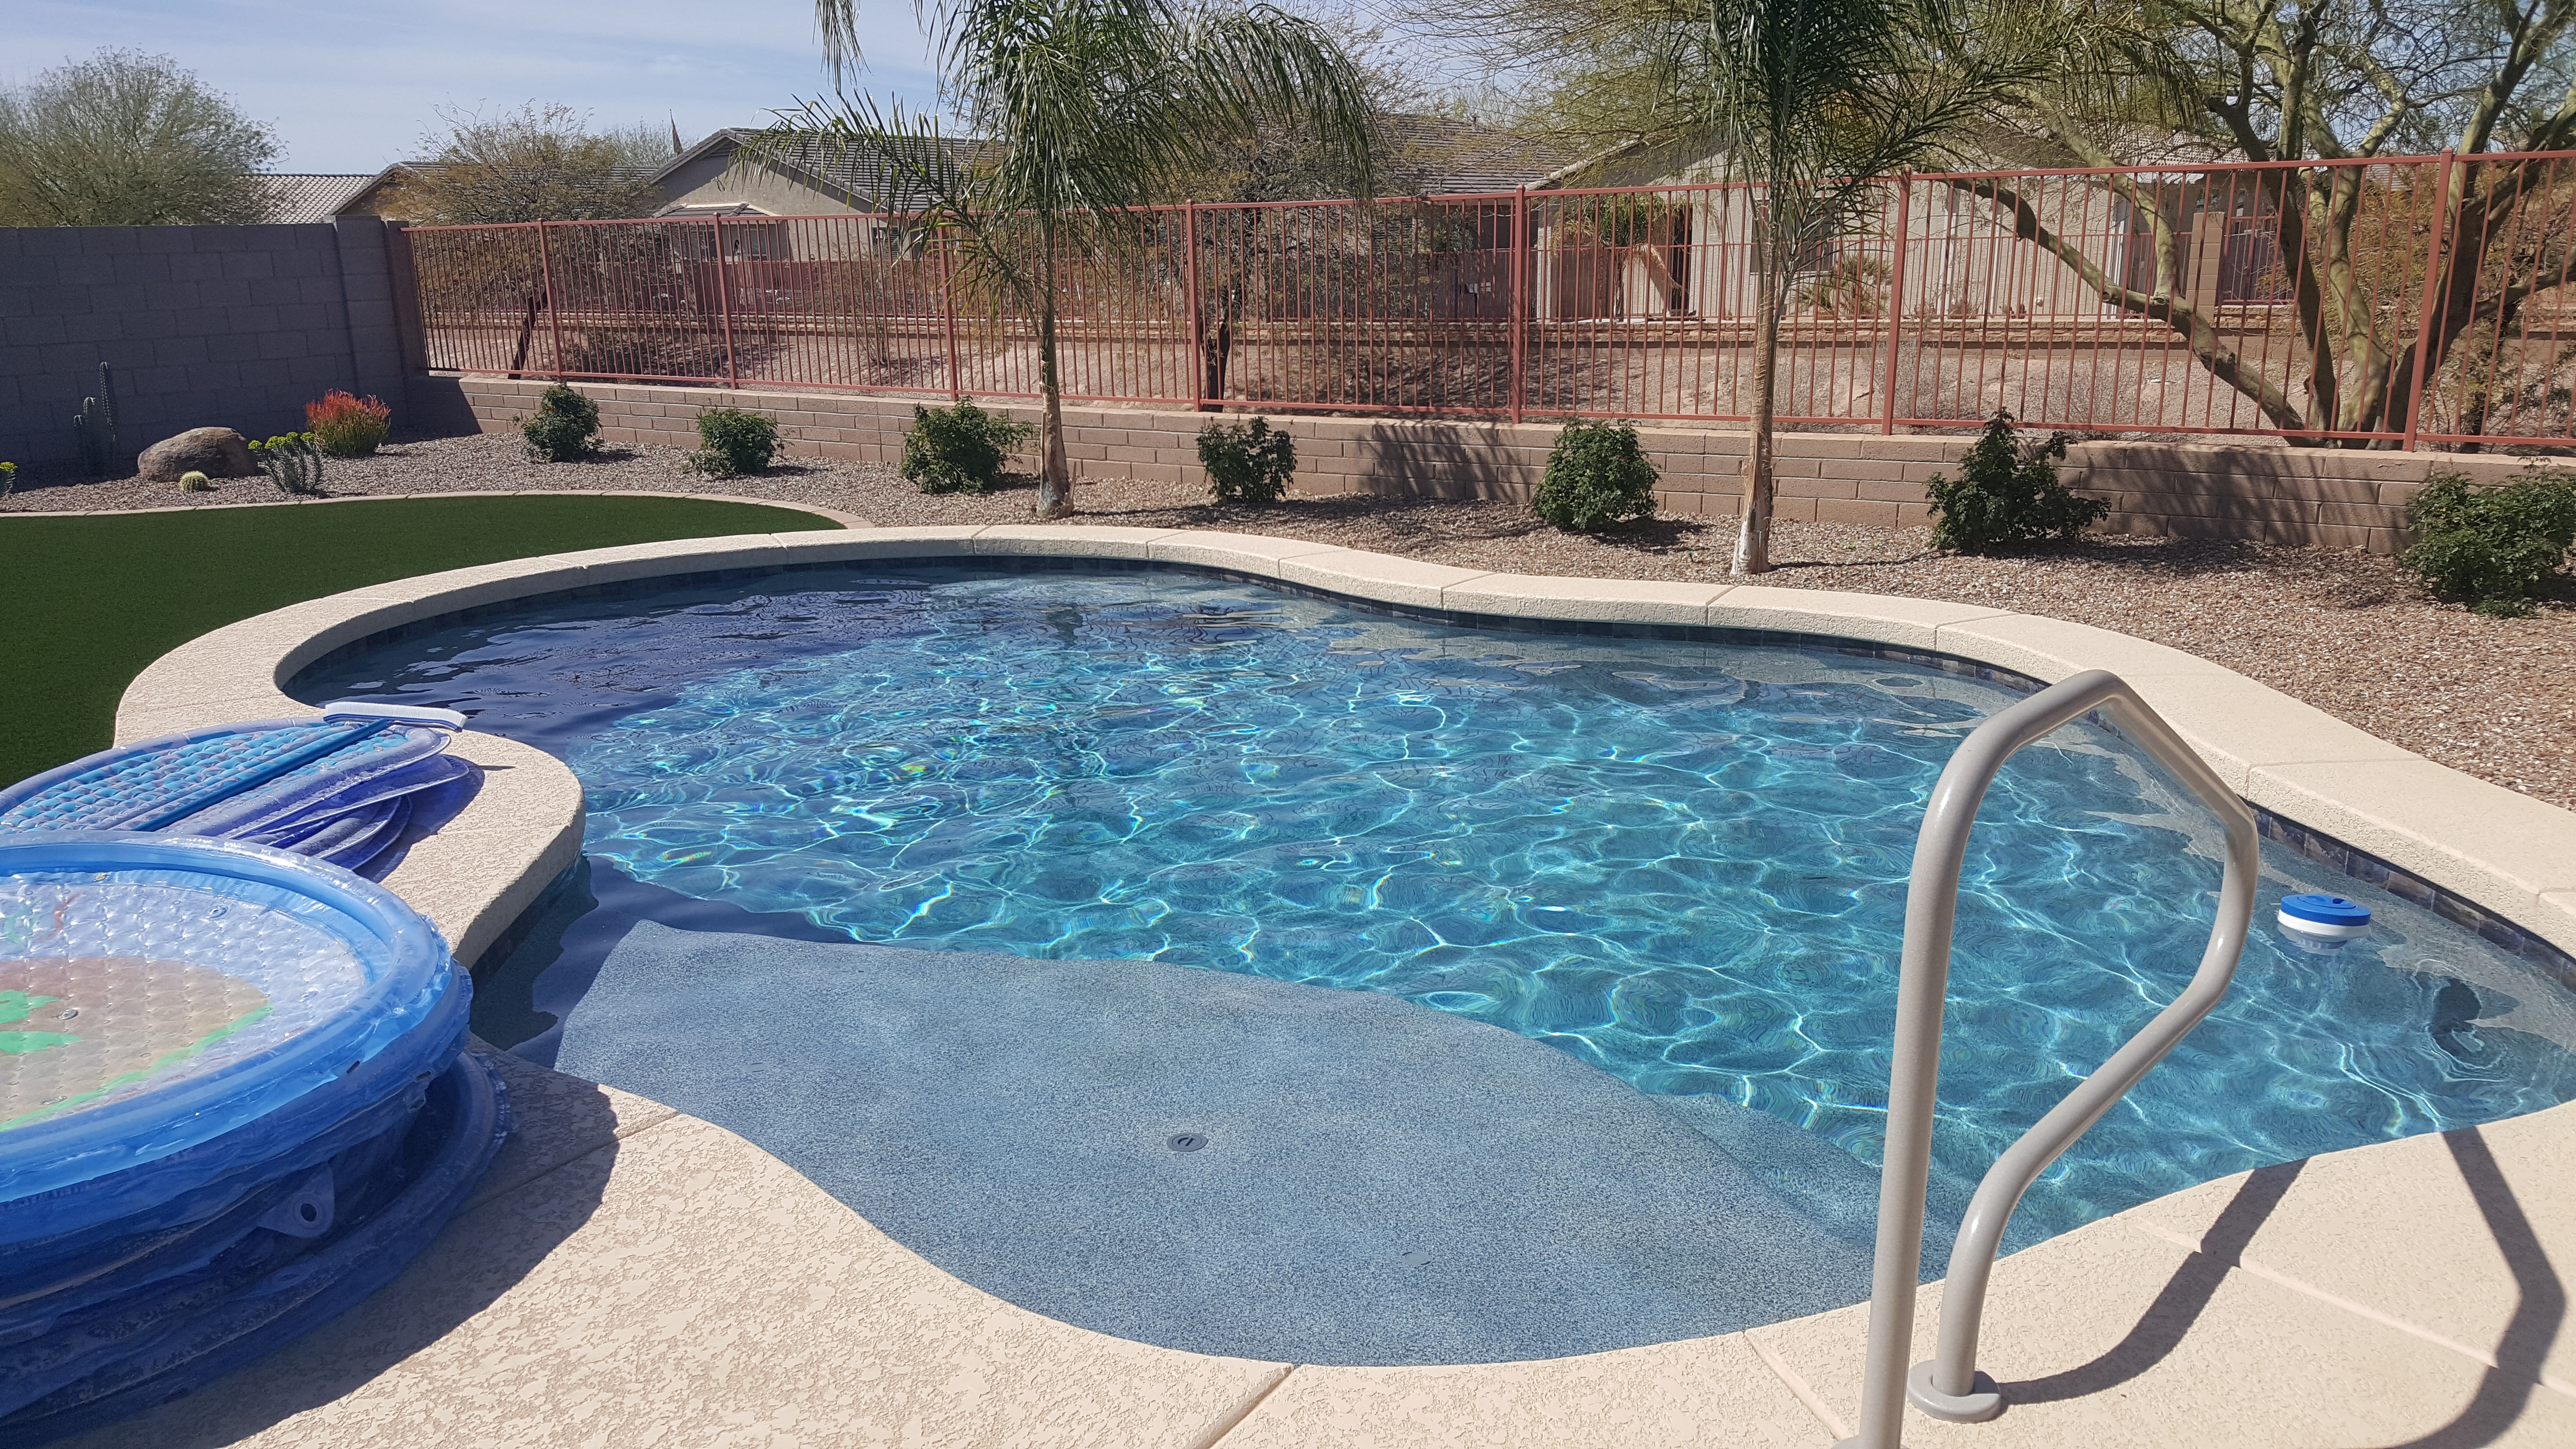 Pool Build Highlight: The Dellinger Family of Queen Creek, AZ